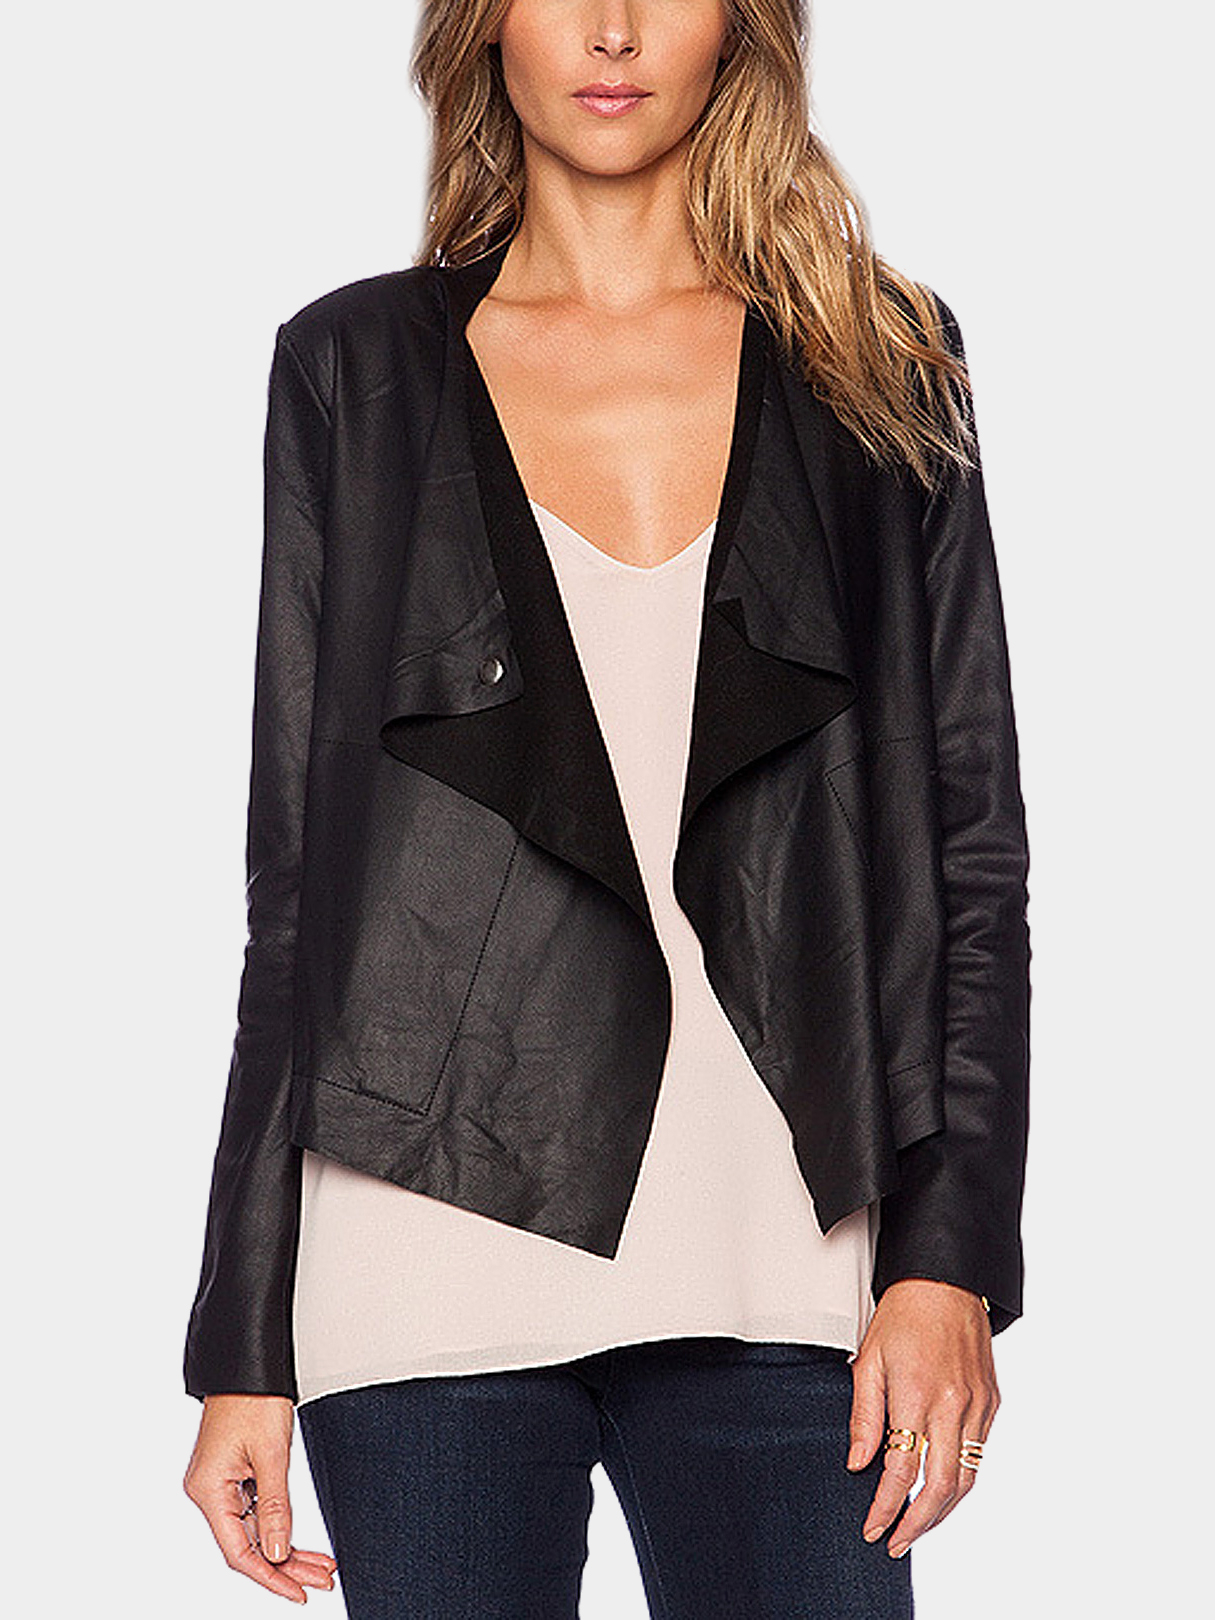 Black PU Leather Draped Short Biker Jacket